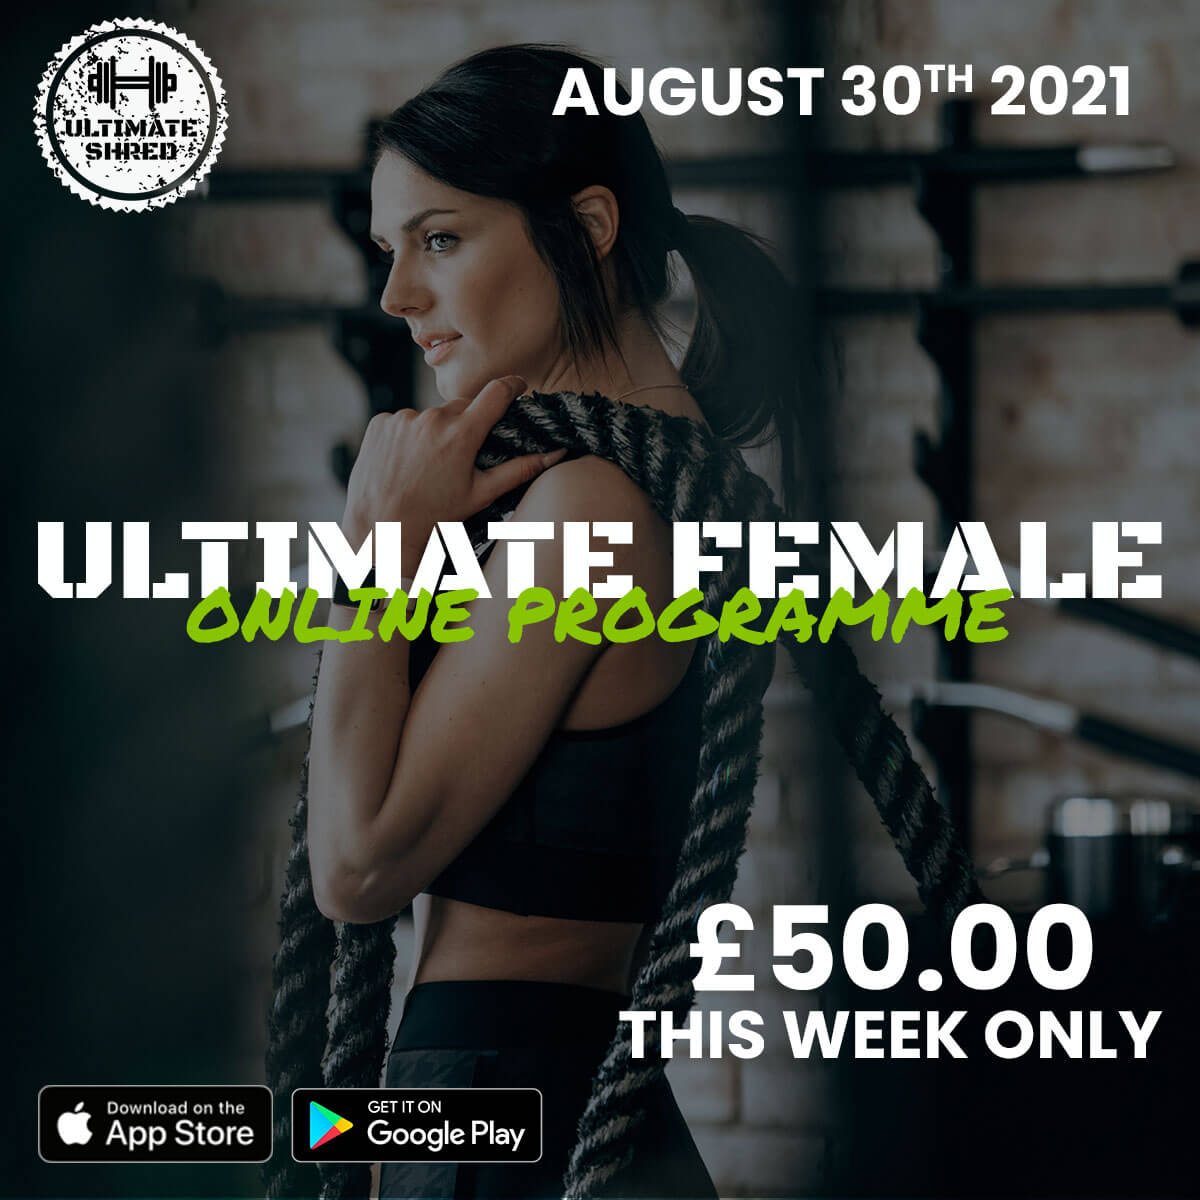 Ultimate Female August 30th 2021